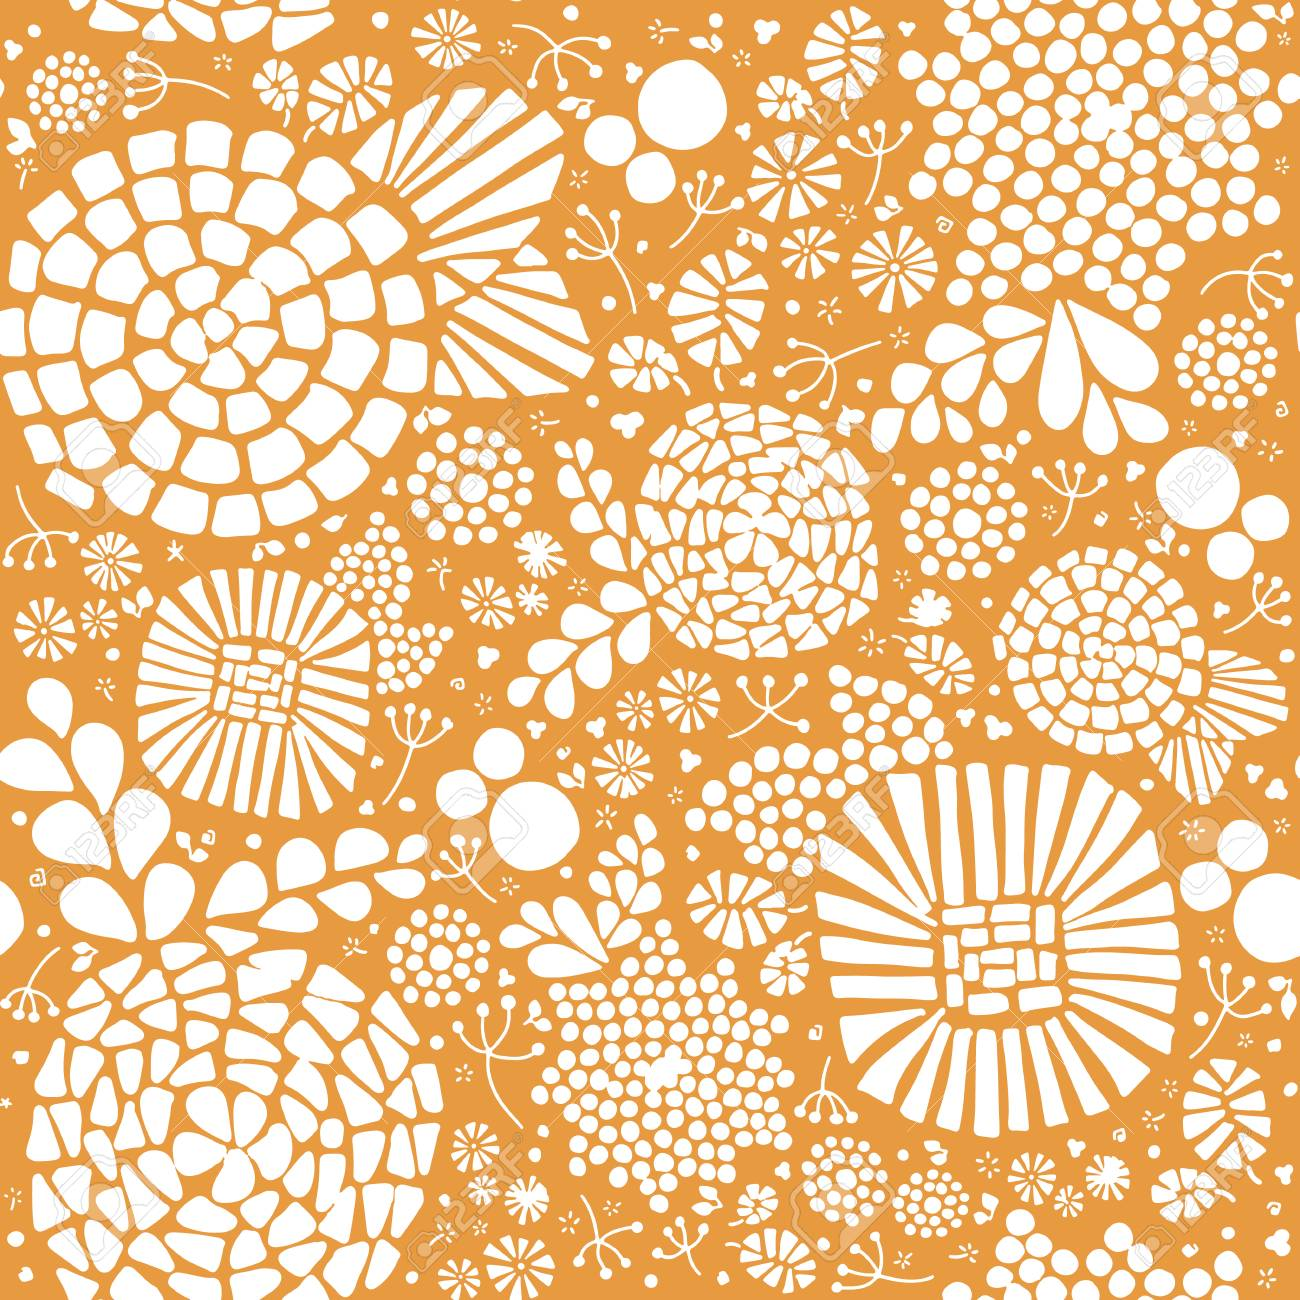 Floral Abstract Mosaic Seamless Vector Background White Flowers